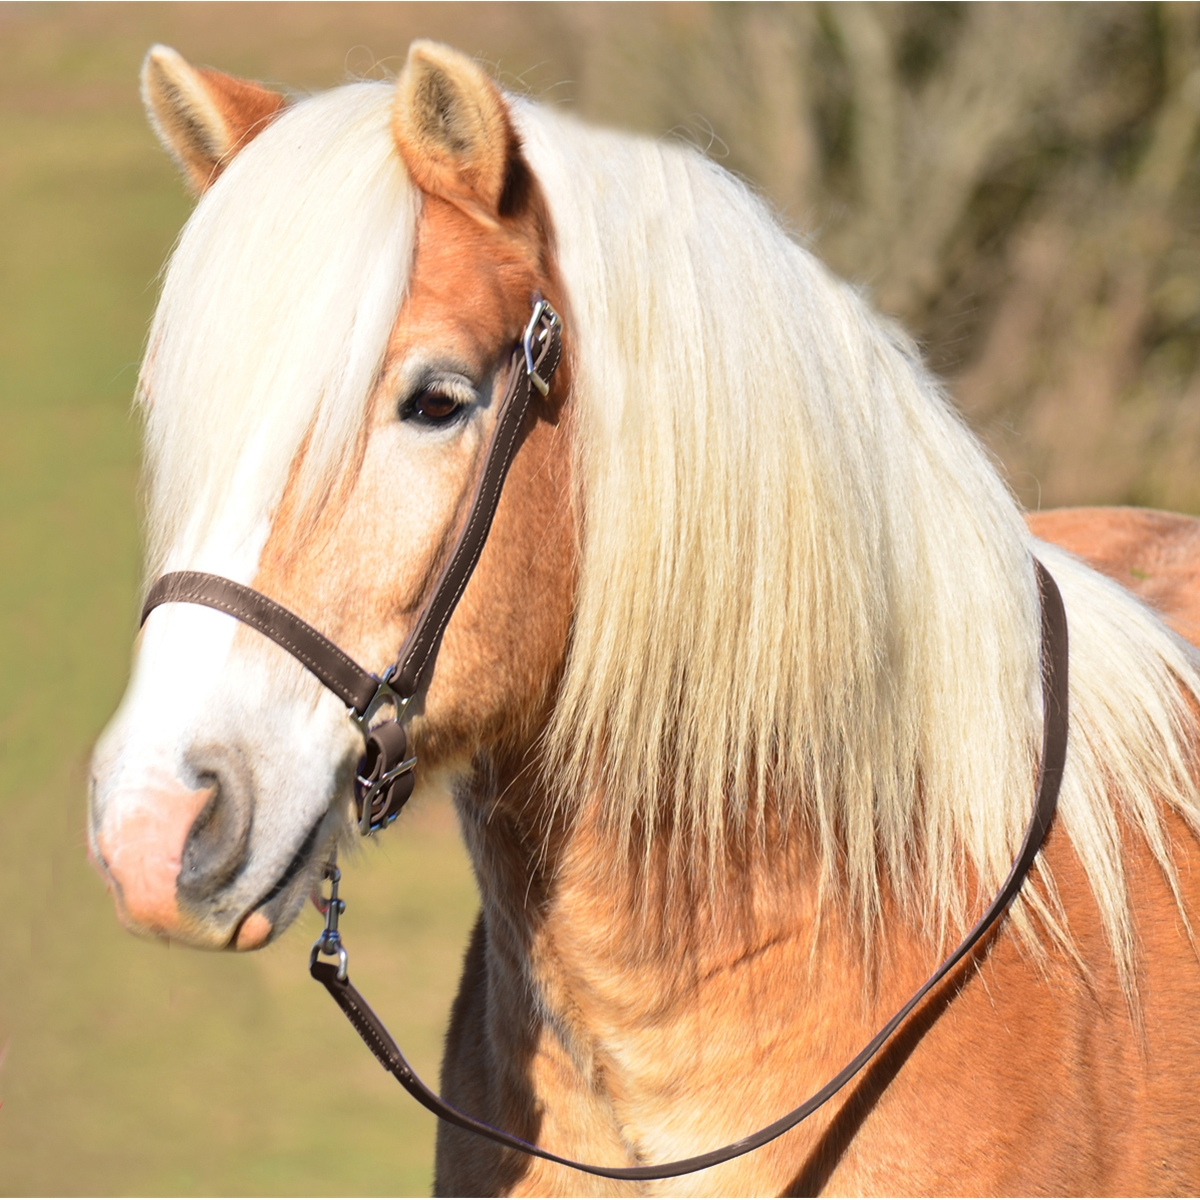 Buy Grooming Halter In Draft Horse Size From Two Horse Tack